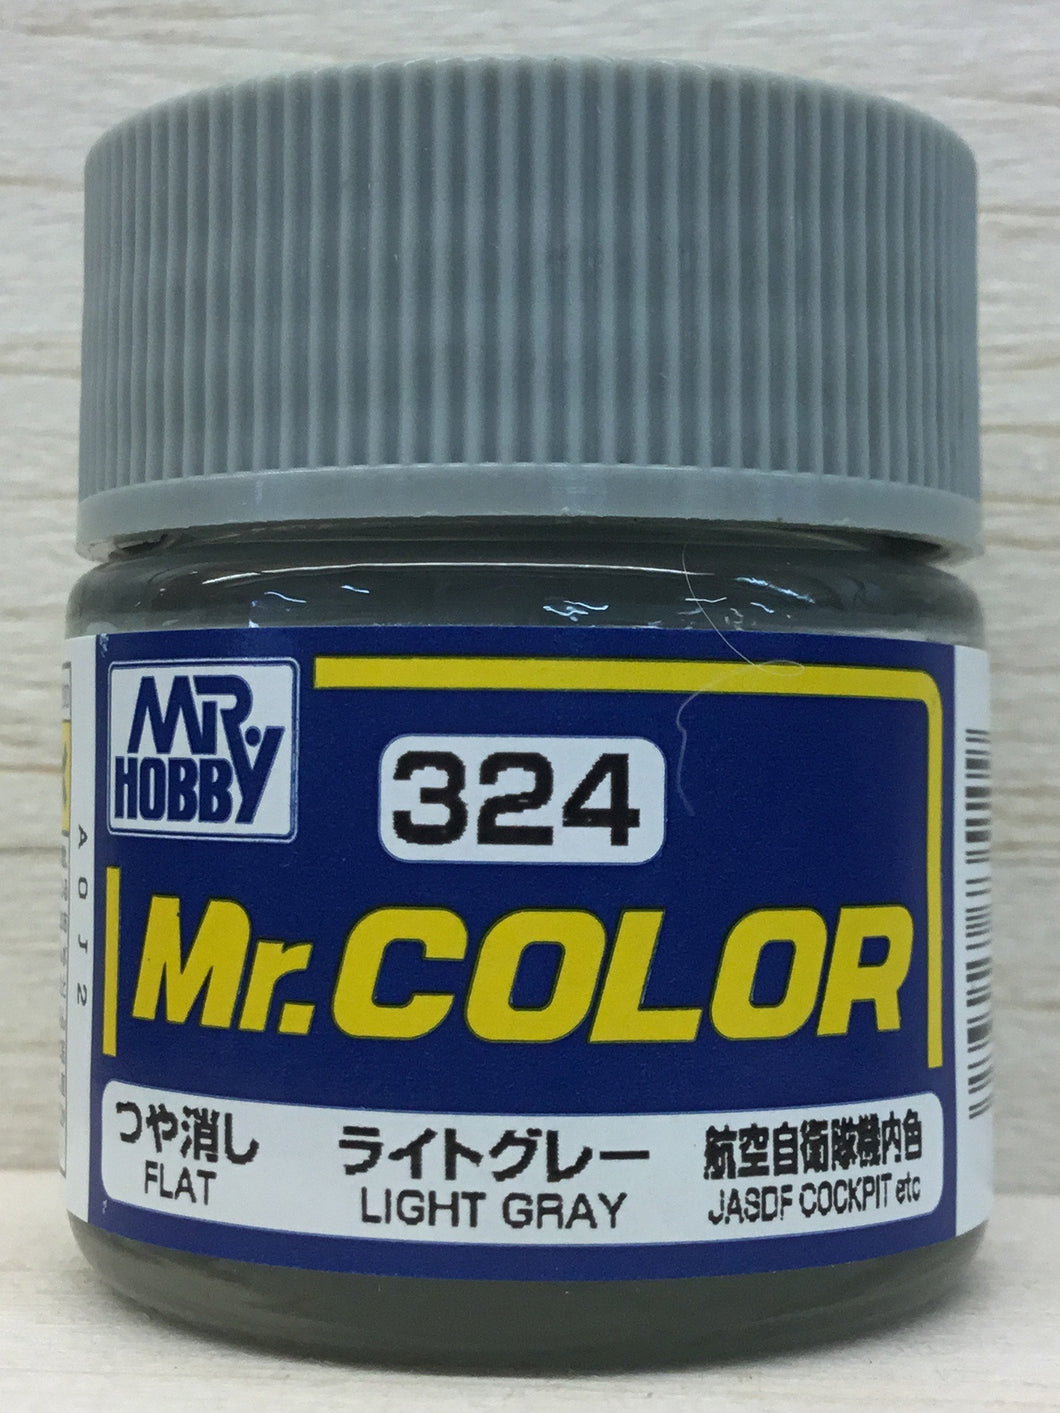 GUNZE MR COLOR C324 FLAT LIGHT GRAY